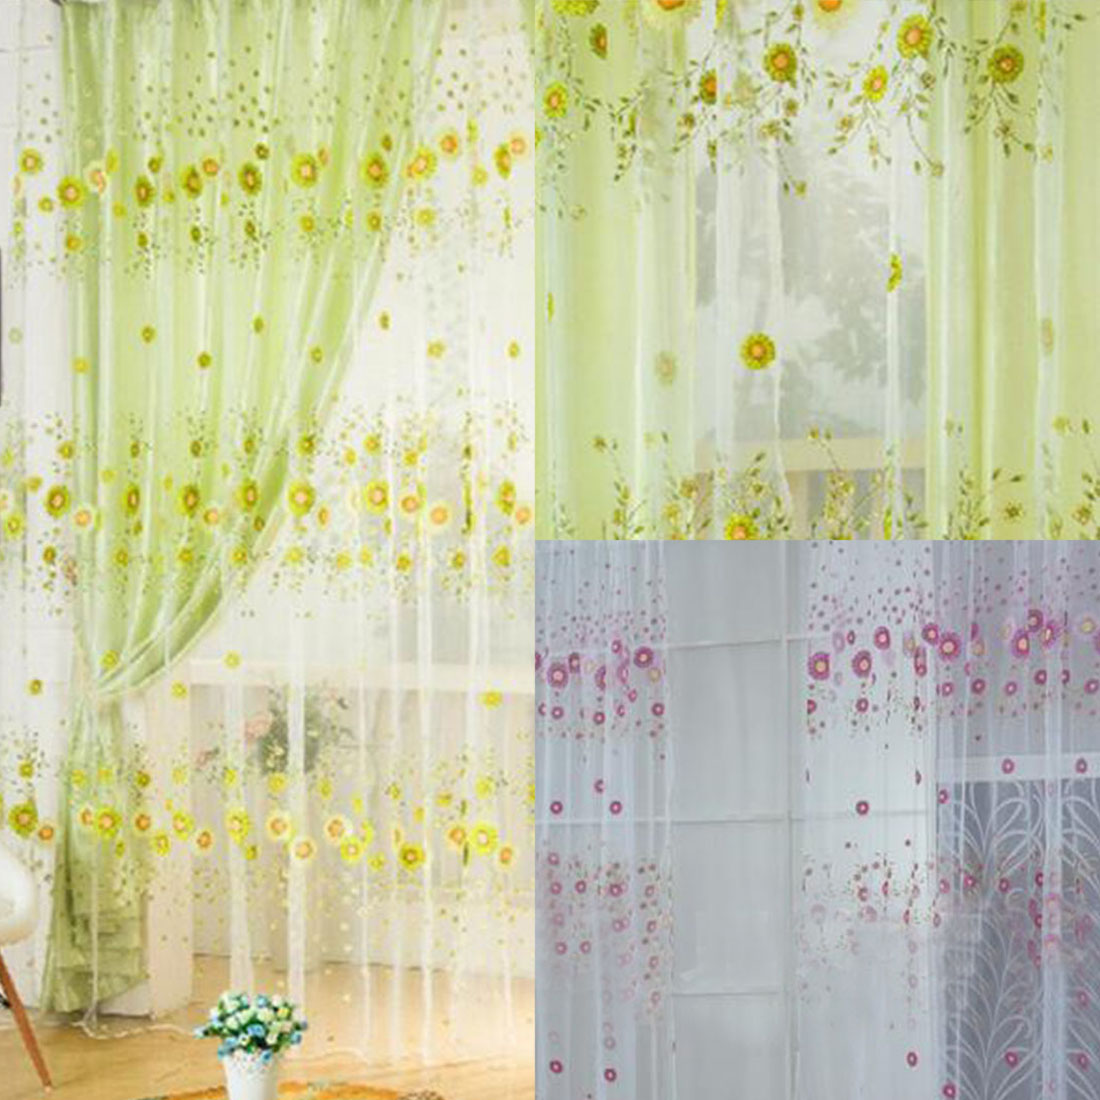 Curtain For Balcony: Aliexpress.com : Buy Curtains Sunflower Printed Voile